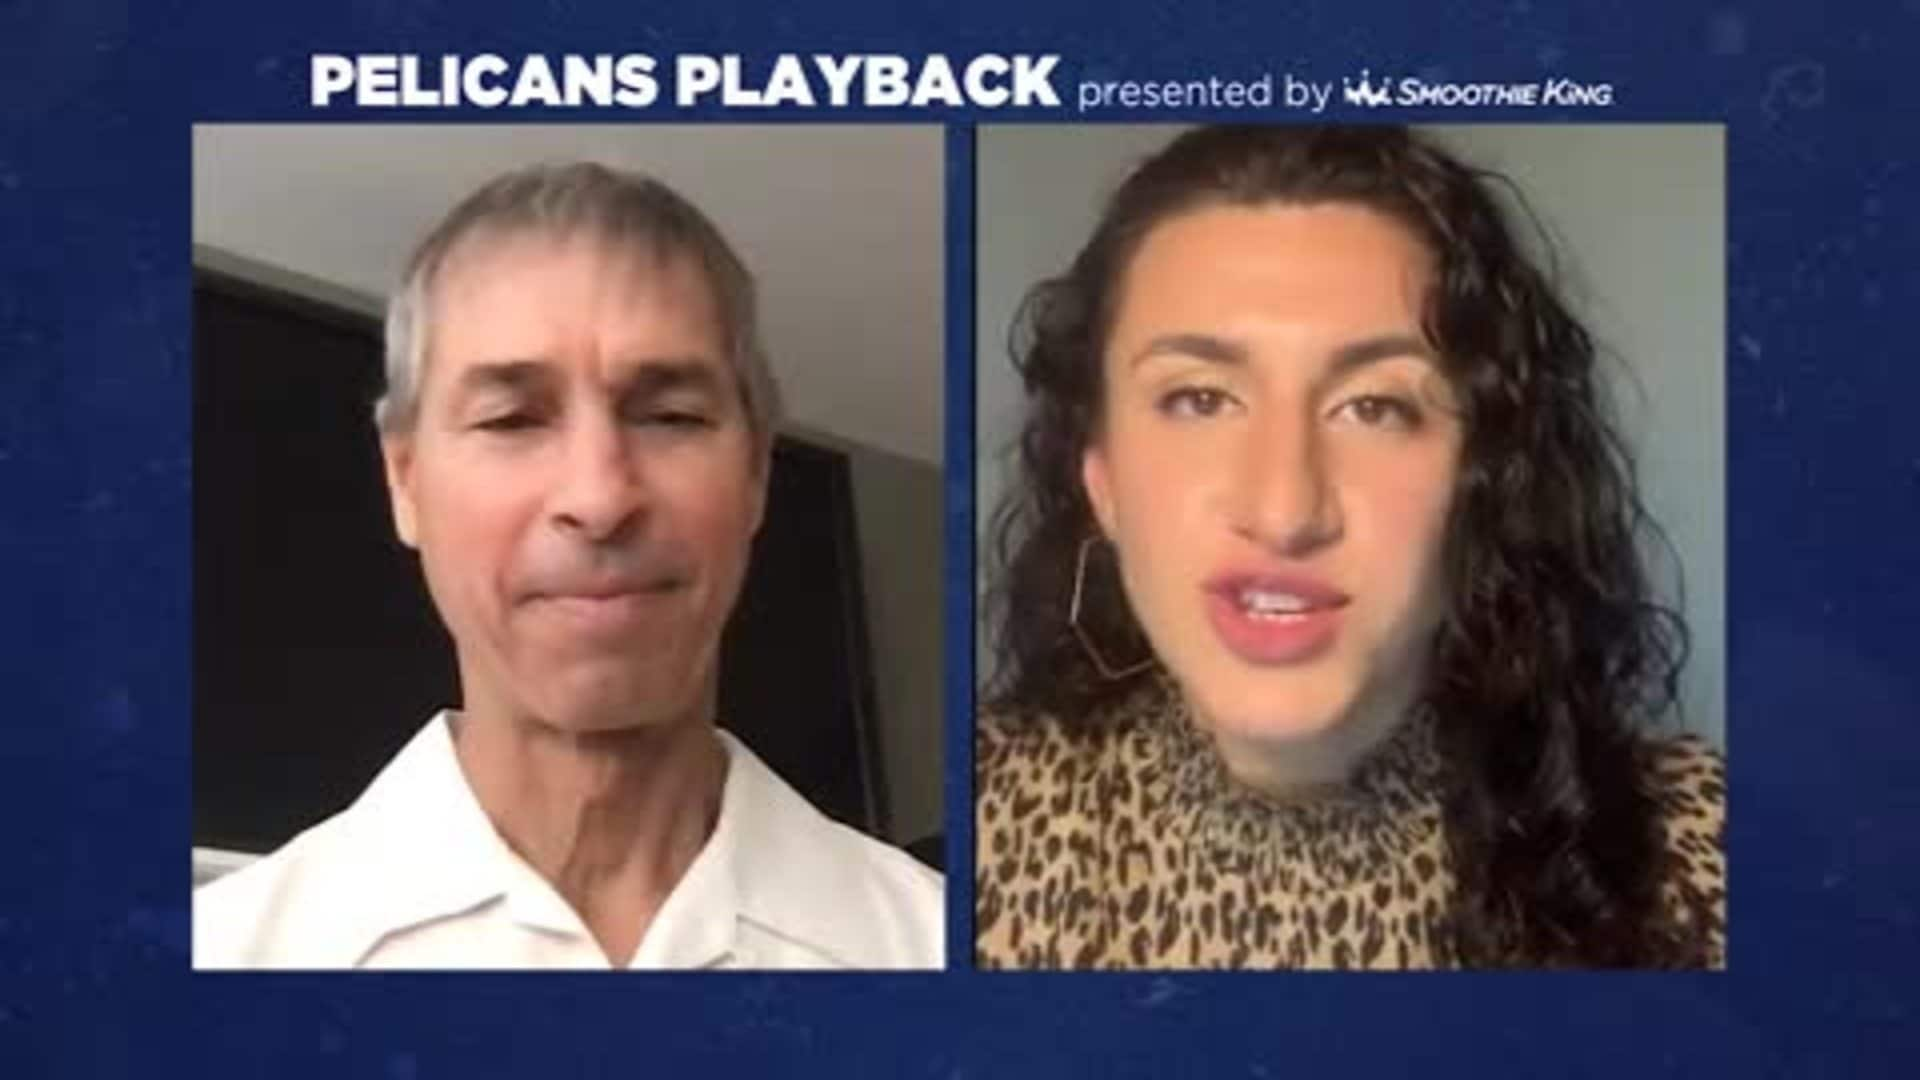 Pelicans Playback with Jeff Bzdelik and Caroline Gonzalez - April 28, 2020